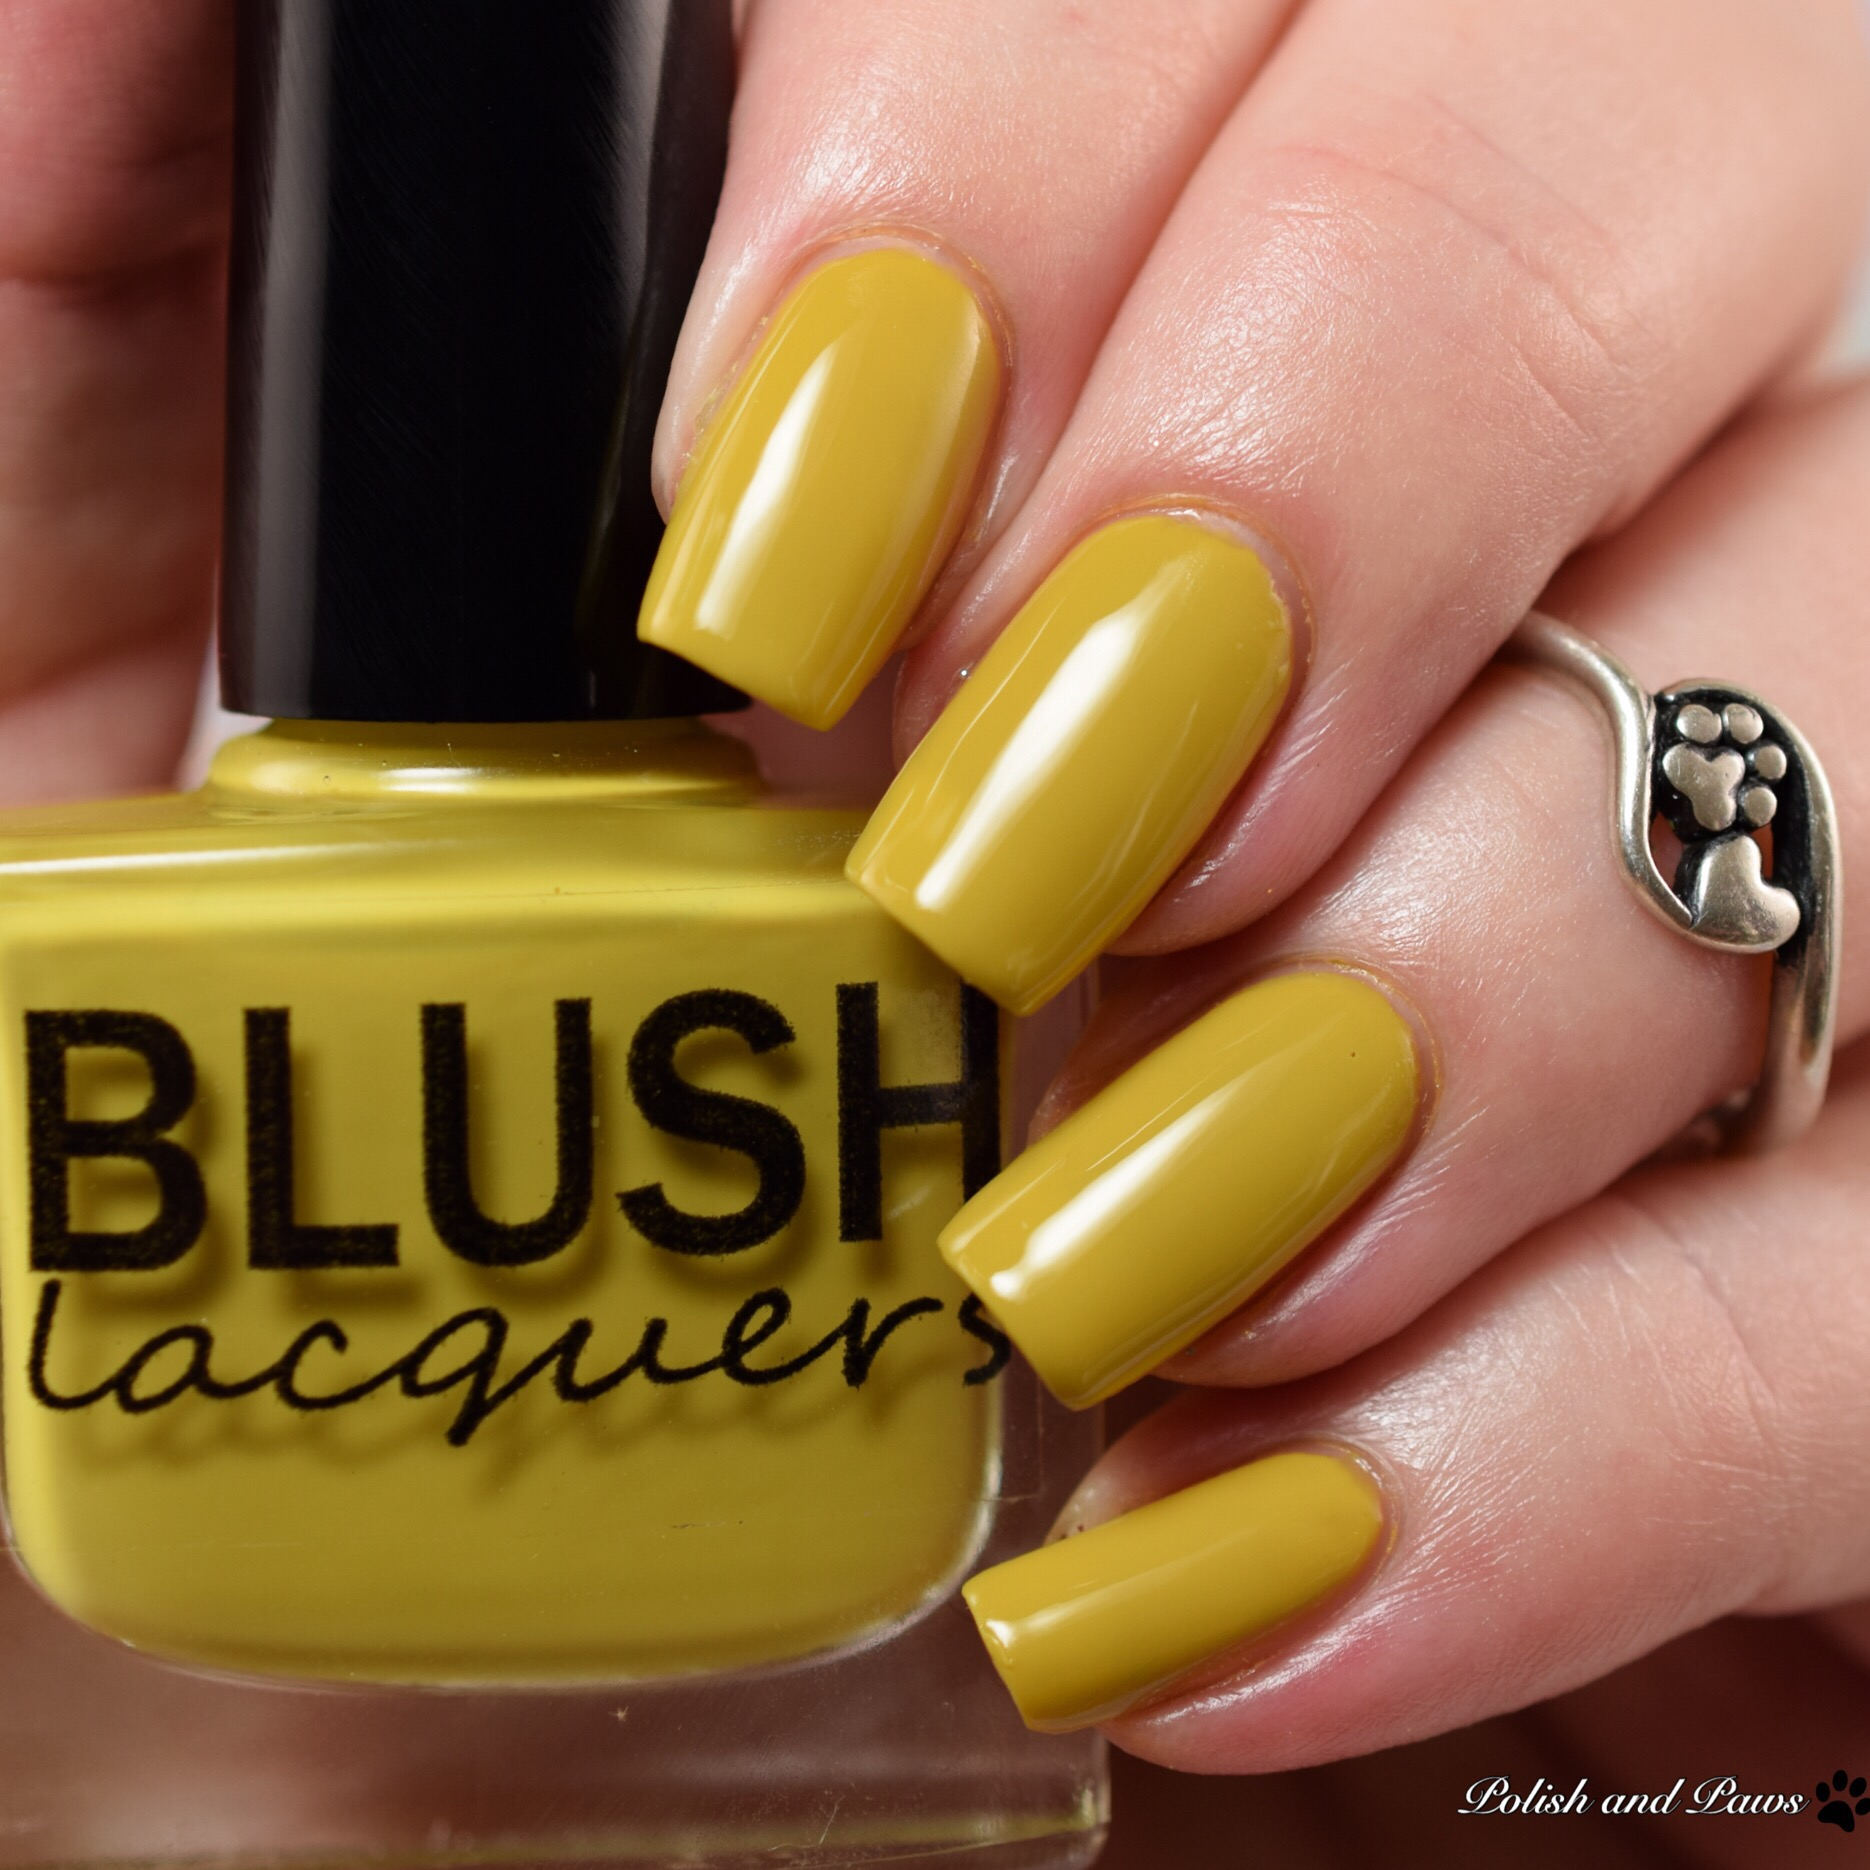 Blush Lacquers The Blind Banker